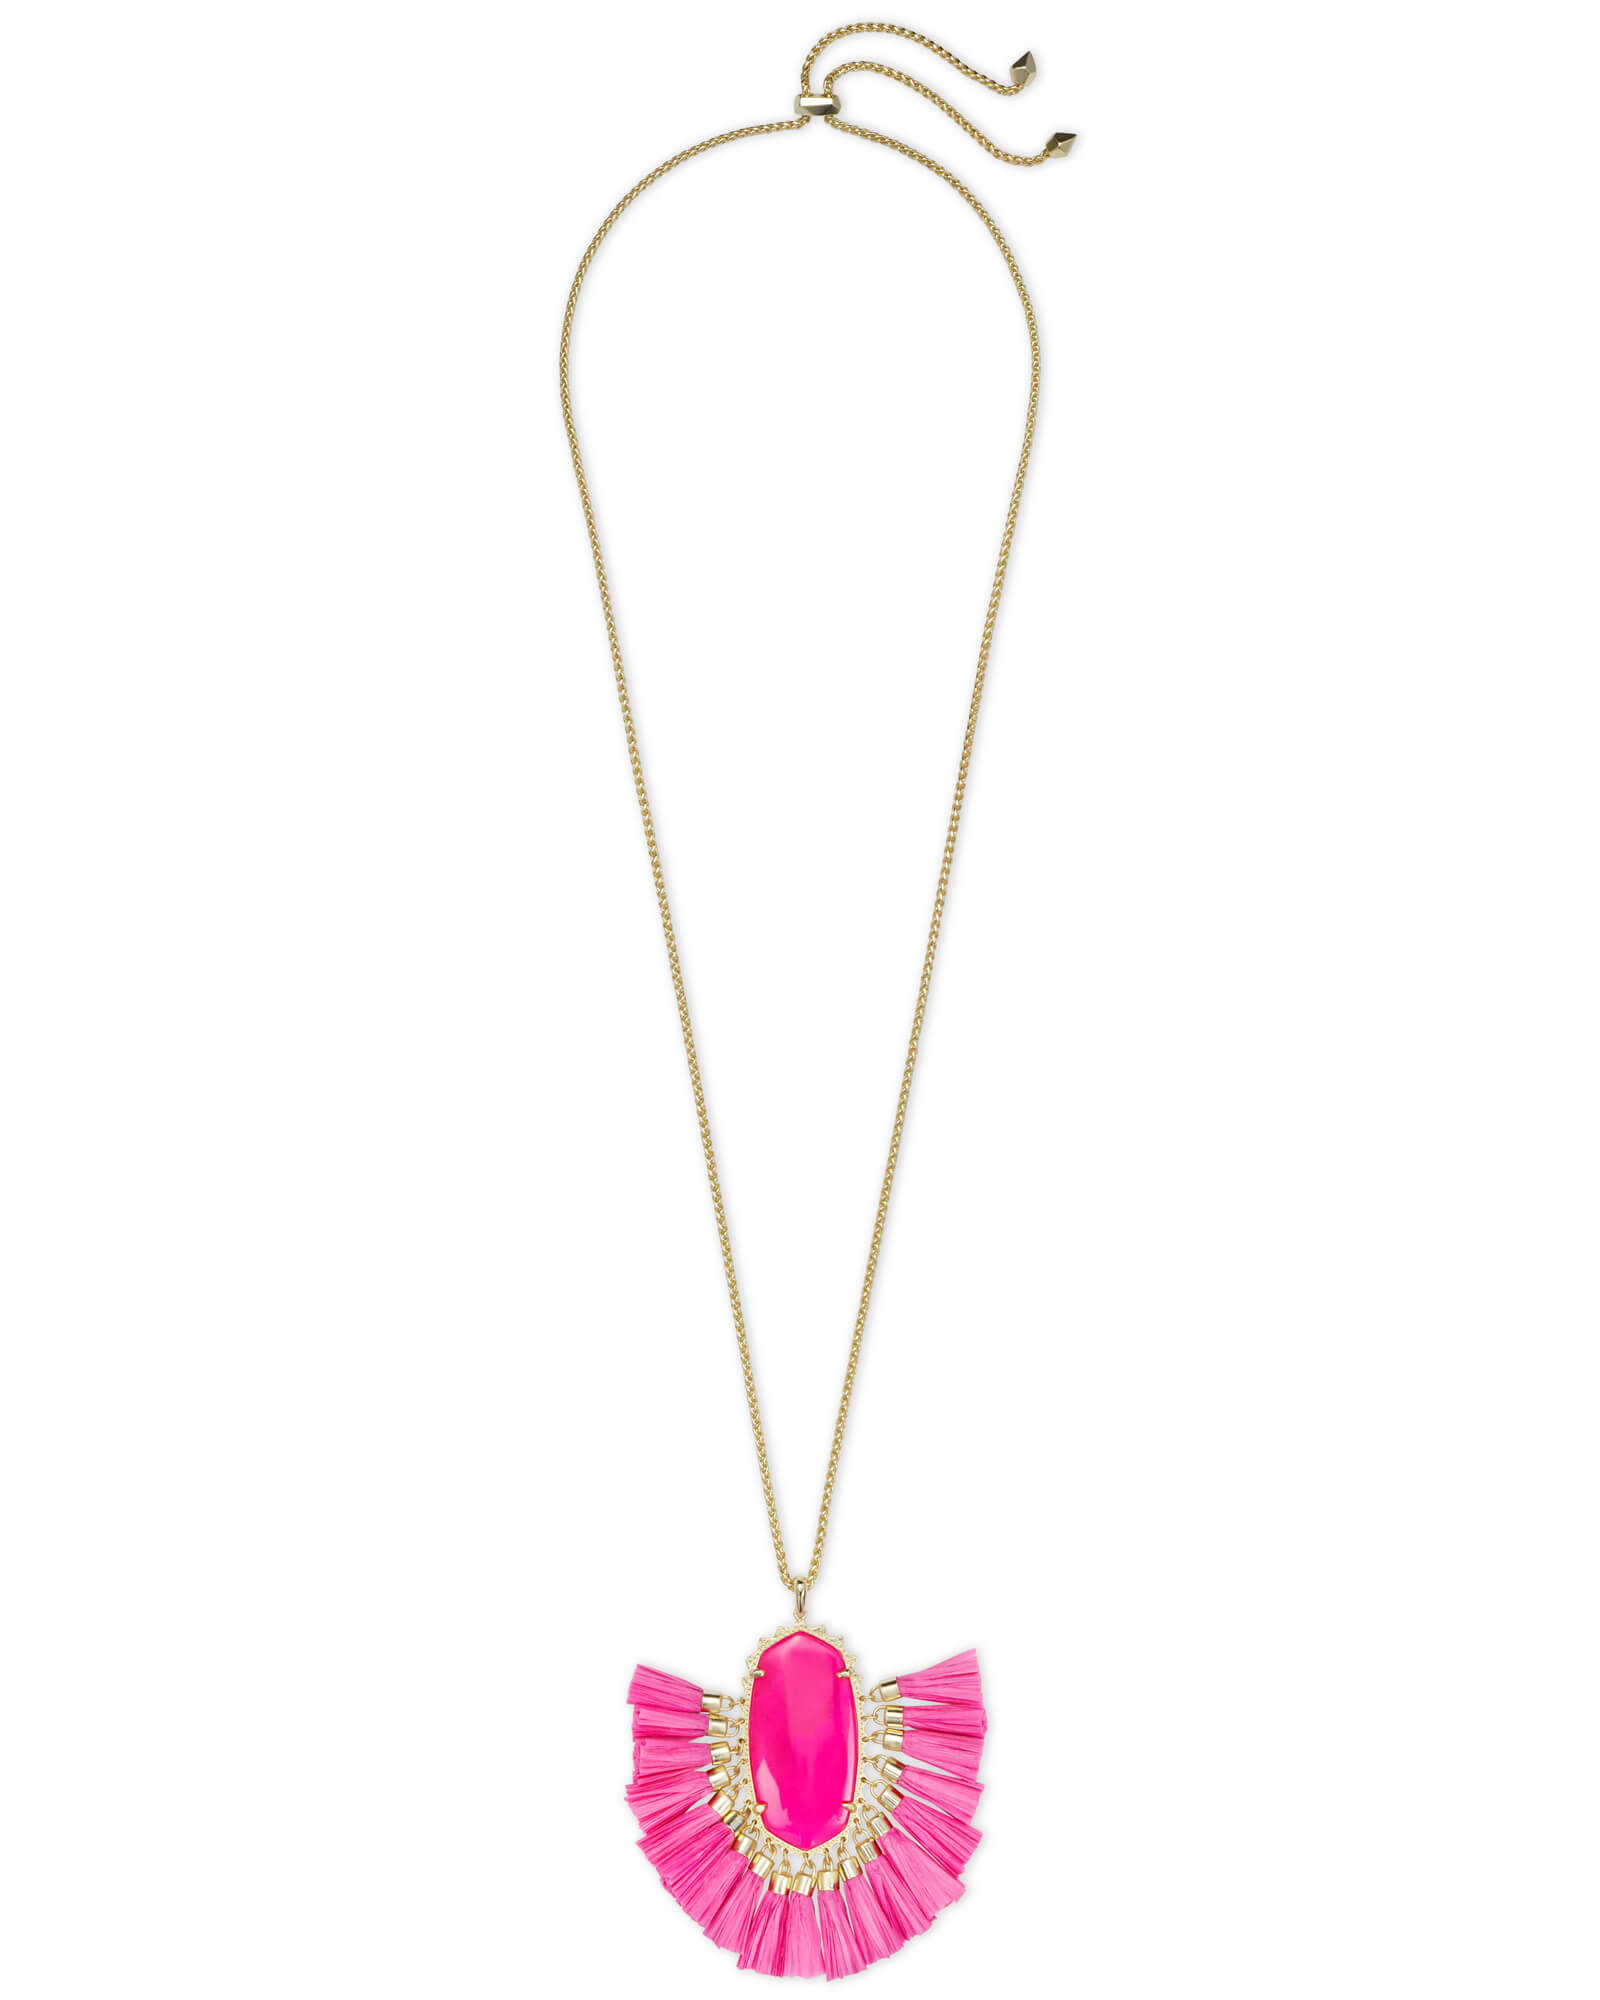 Betsy Gold Long Pendant Necklace in Pink Agate